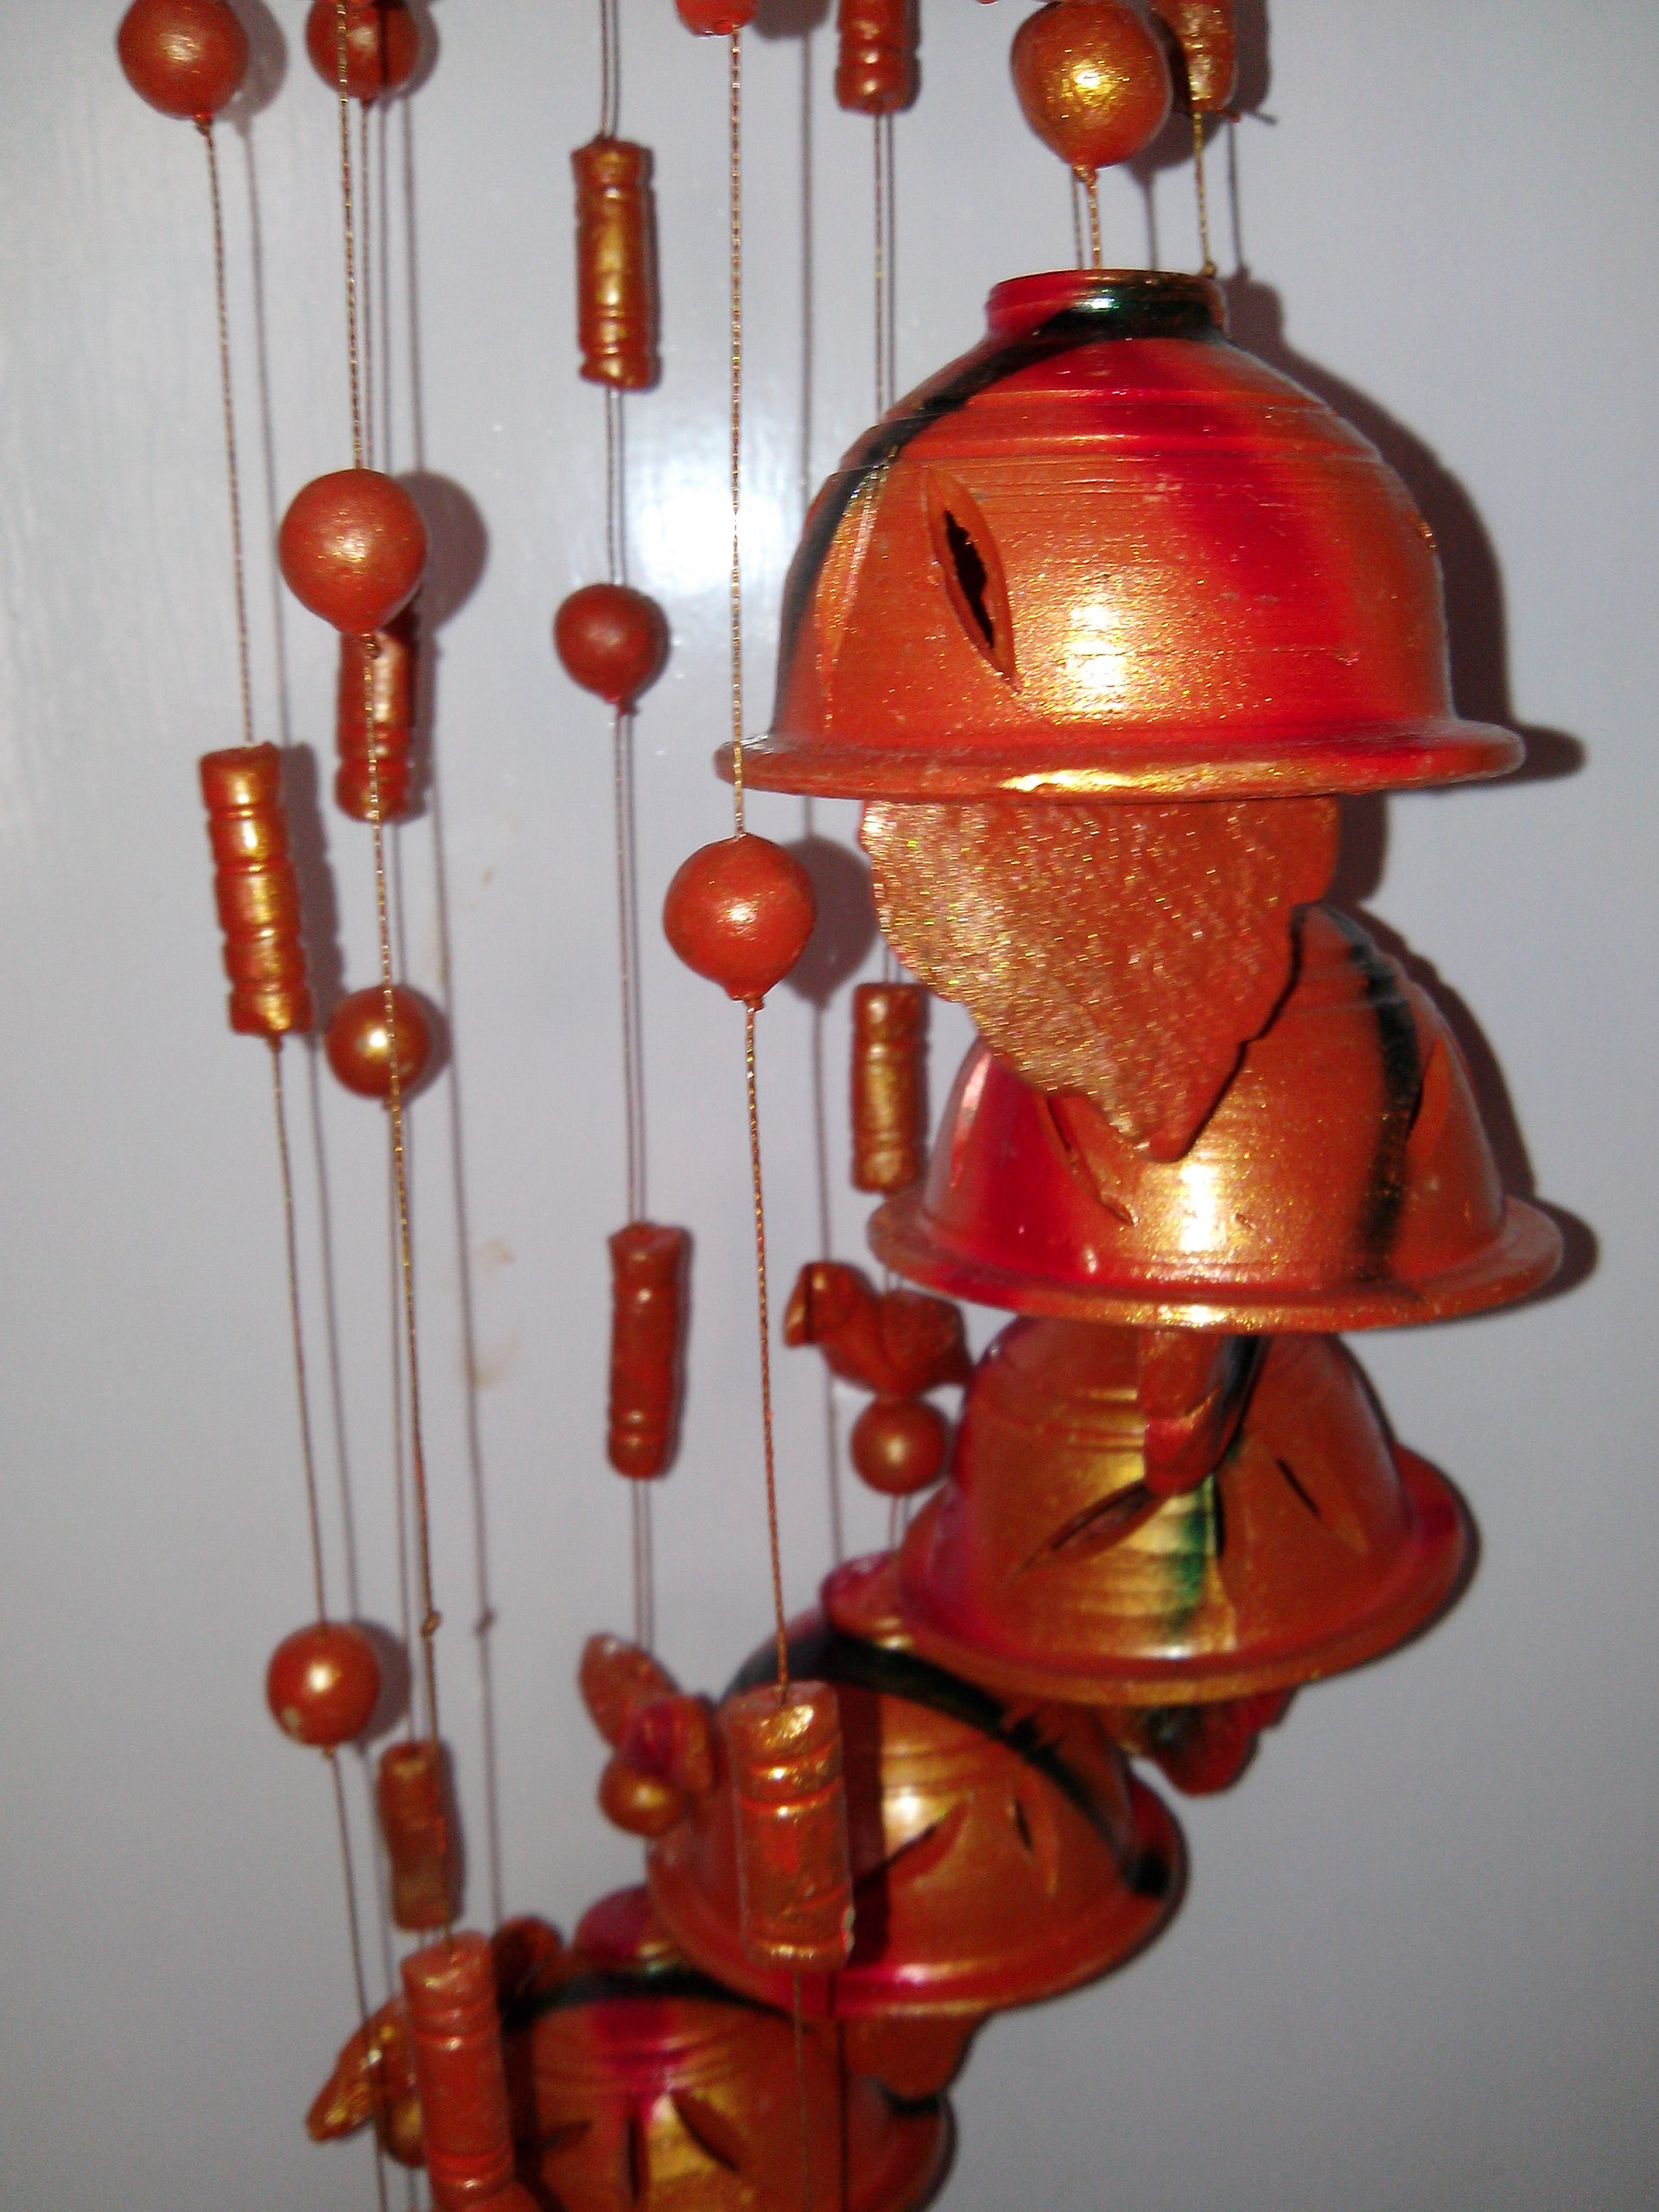 Terracotta wind chimes from birbhum bankura westbengal for Terracotta wind chimes